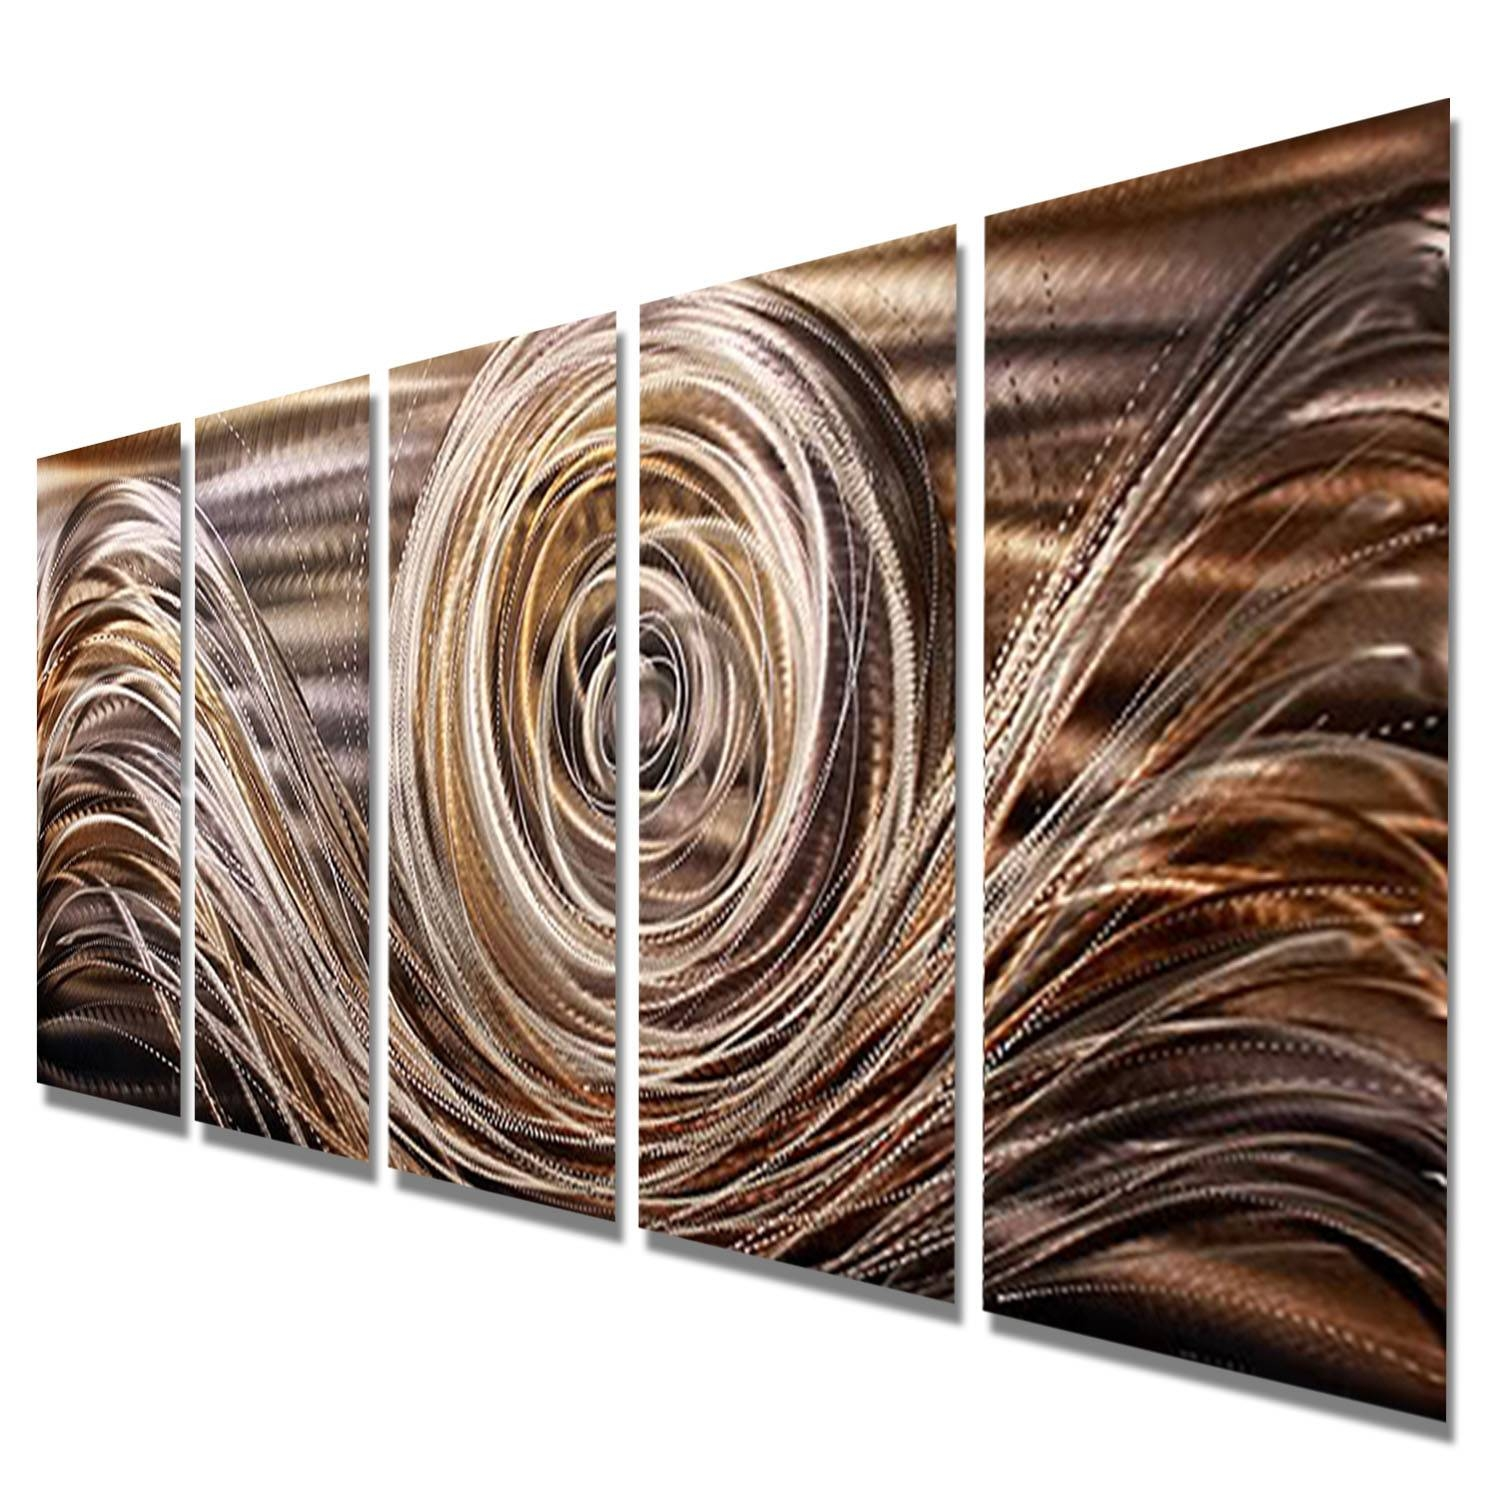 Mocha Swirl – Charcoal, Brown, Gold, And Silver Metal Wall Art – 5 For Newest Silver Metal Wall Art (View 6 of 20)